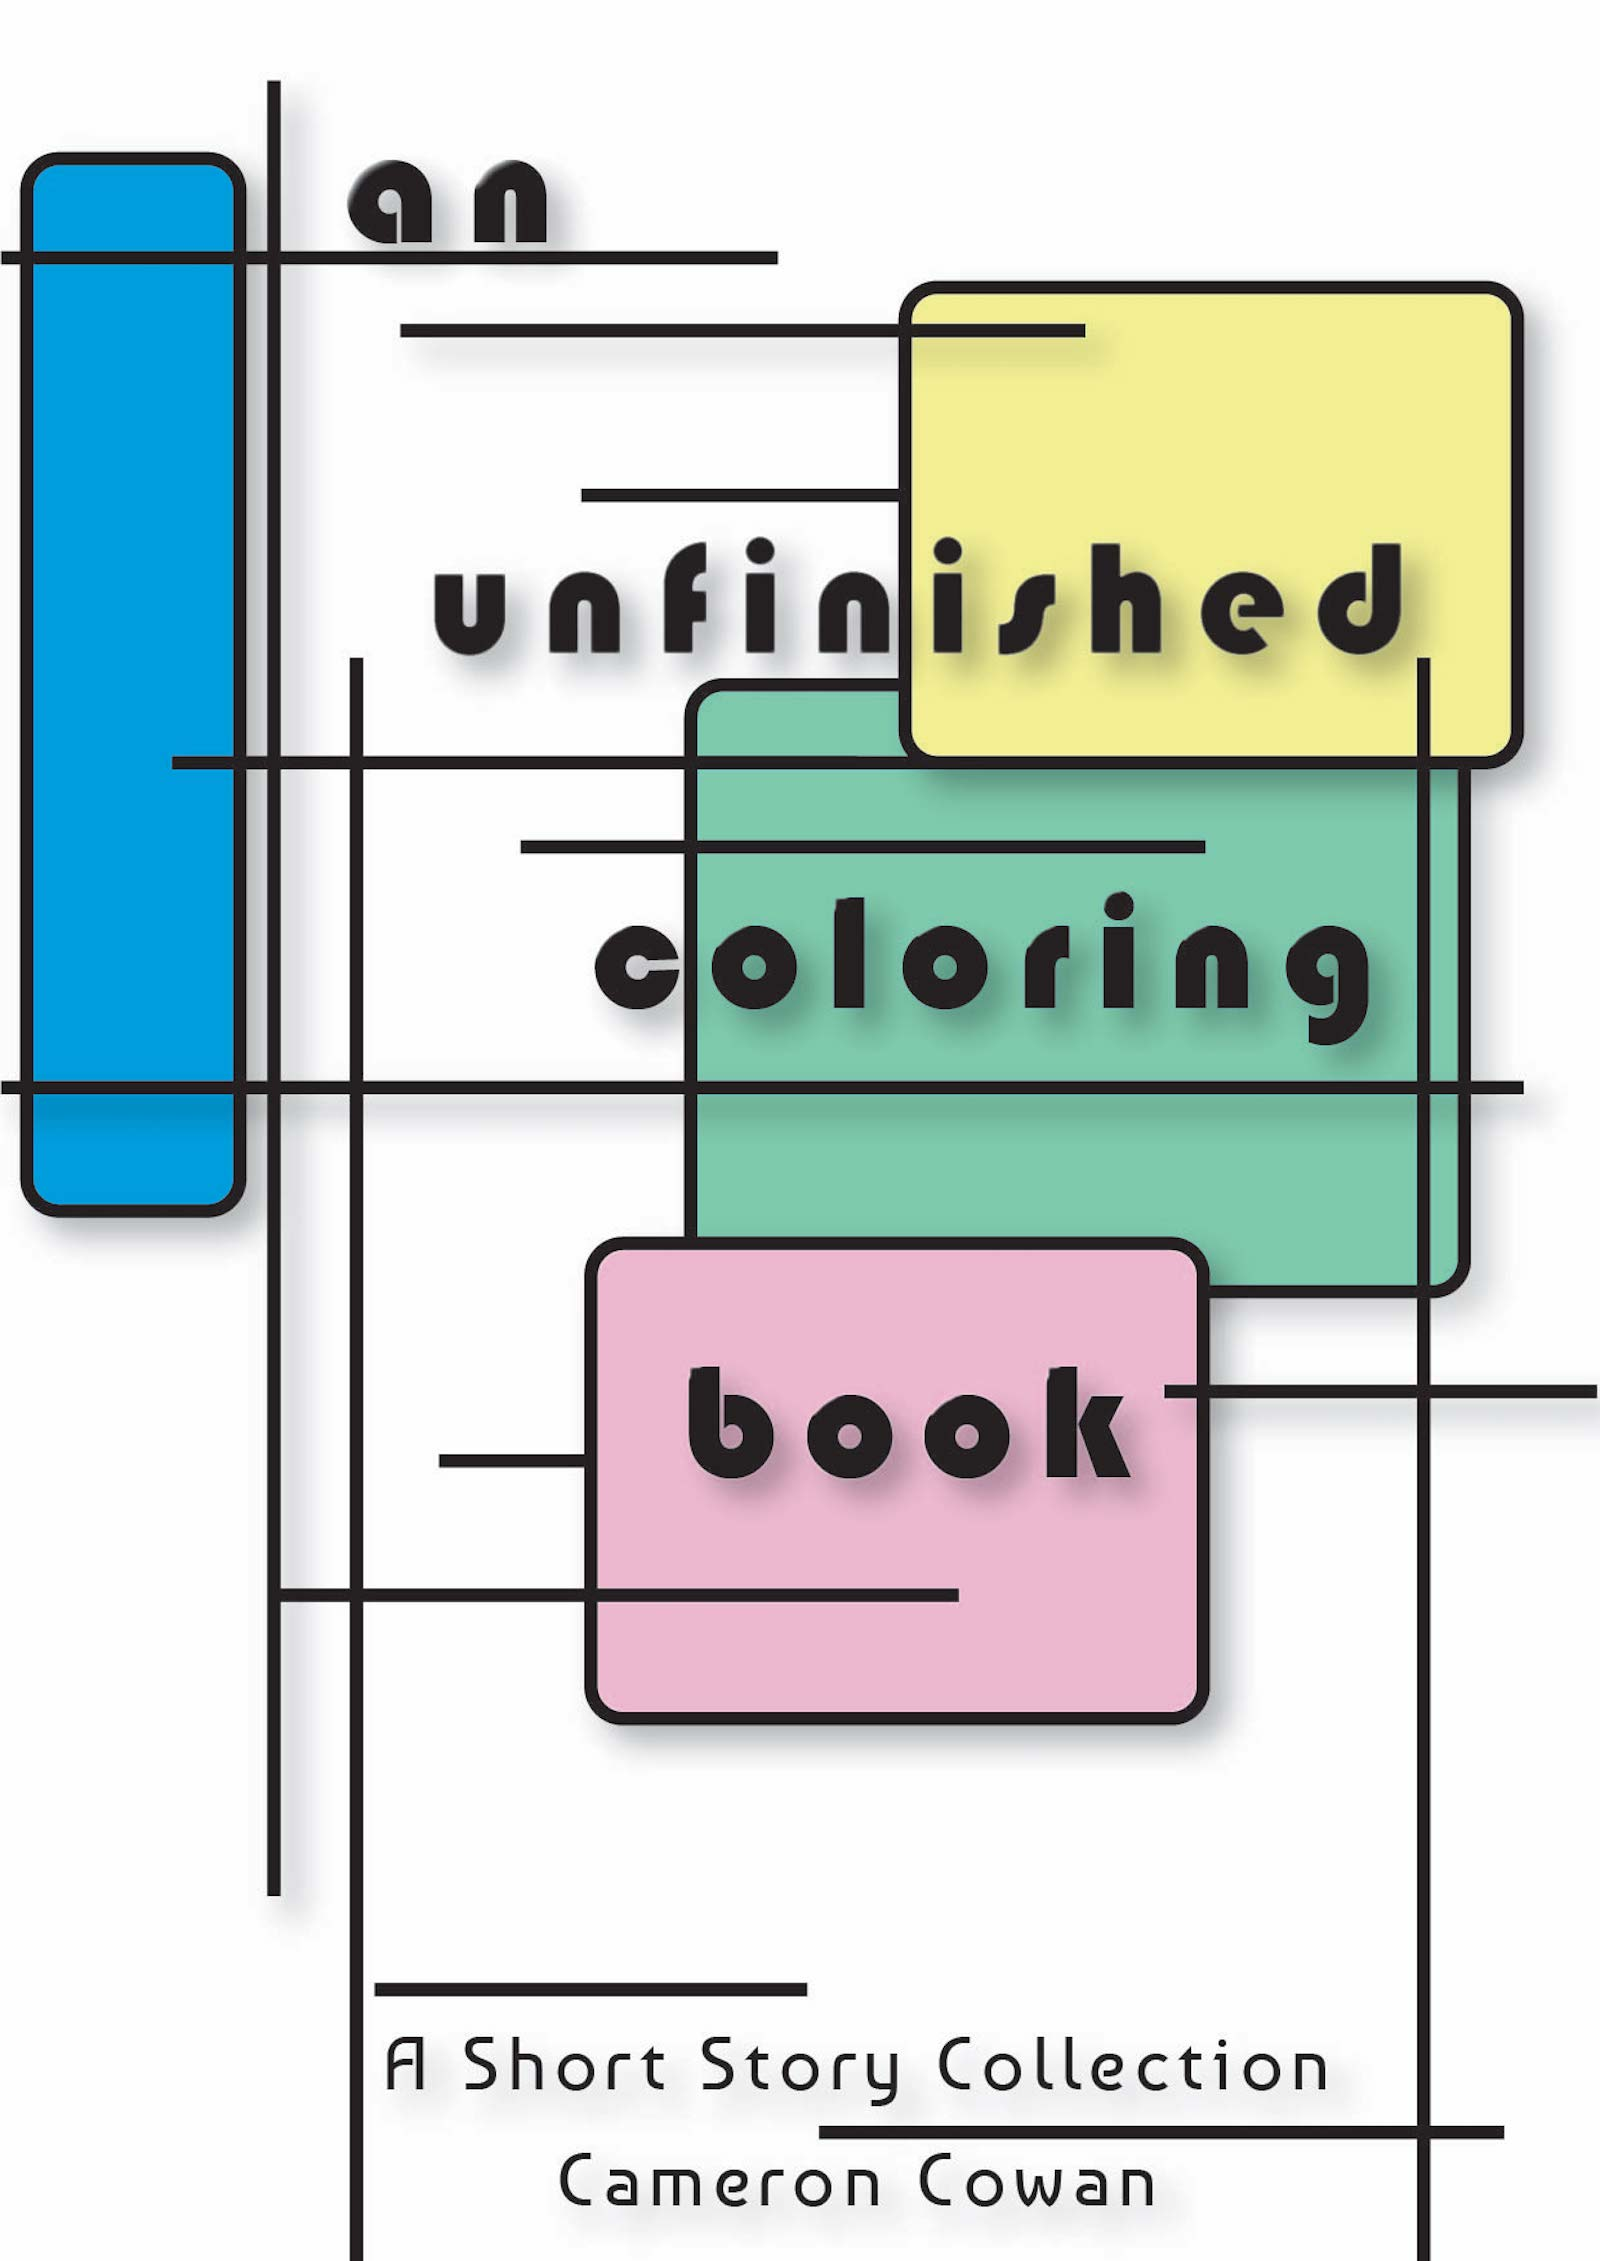 Cameron Cowan Releases His New Short Story Collection; an Unfinished Coloring Book